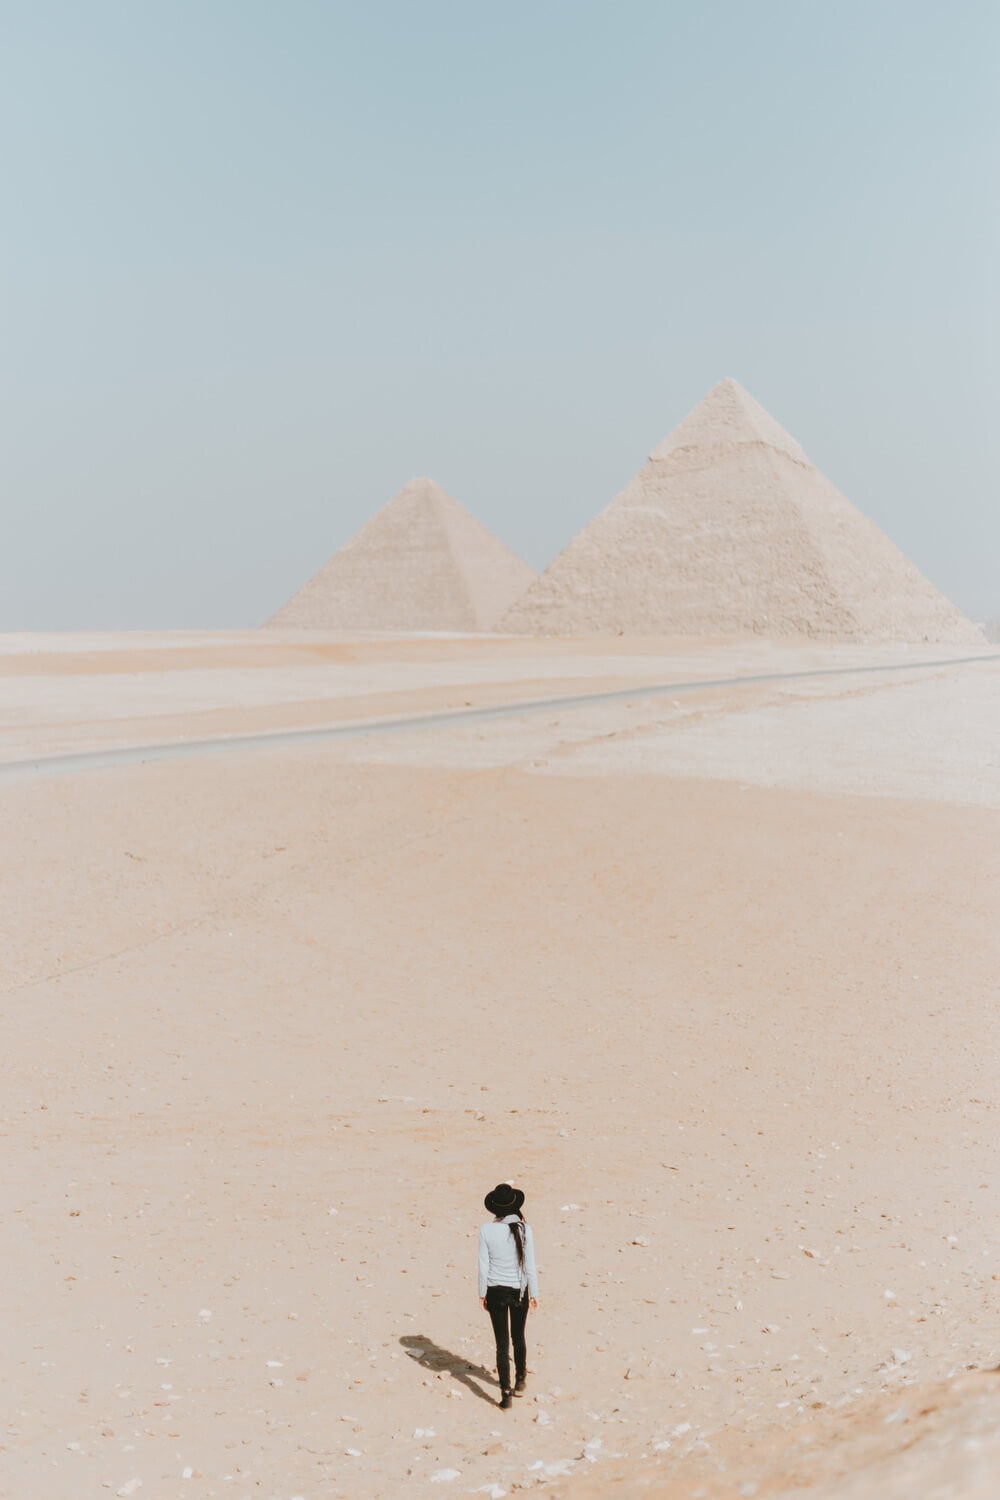 The Giza Pyramid Complex. Image by Jona Grey